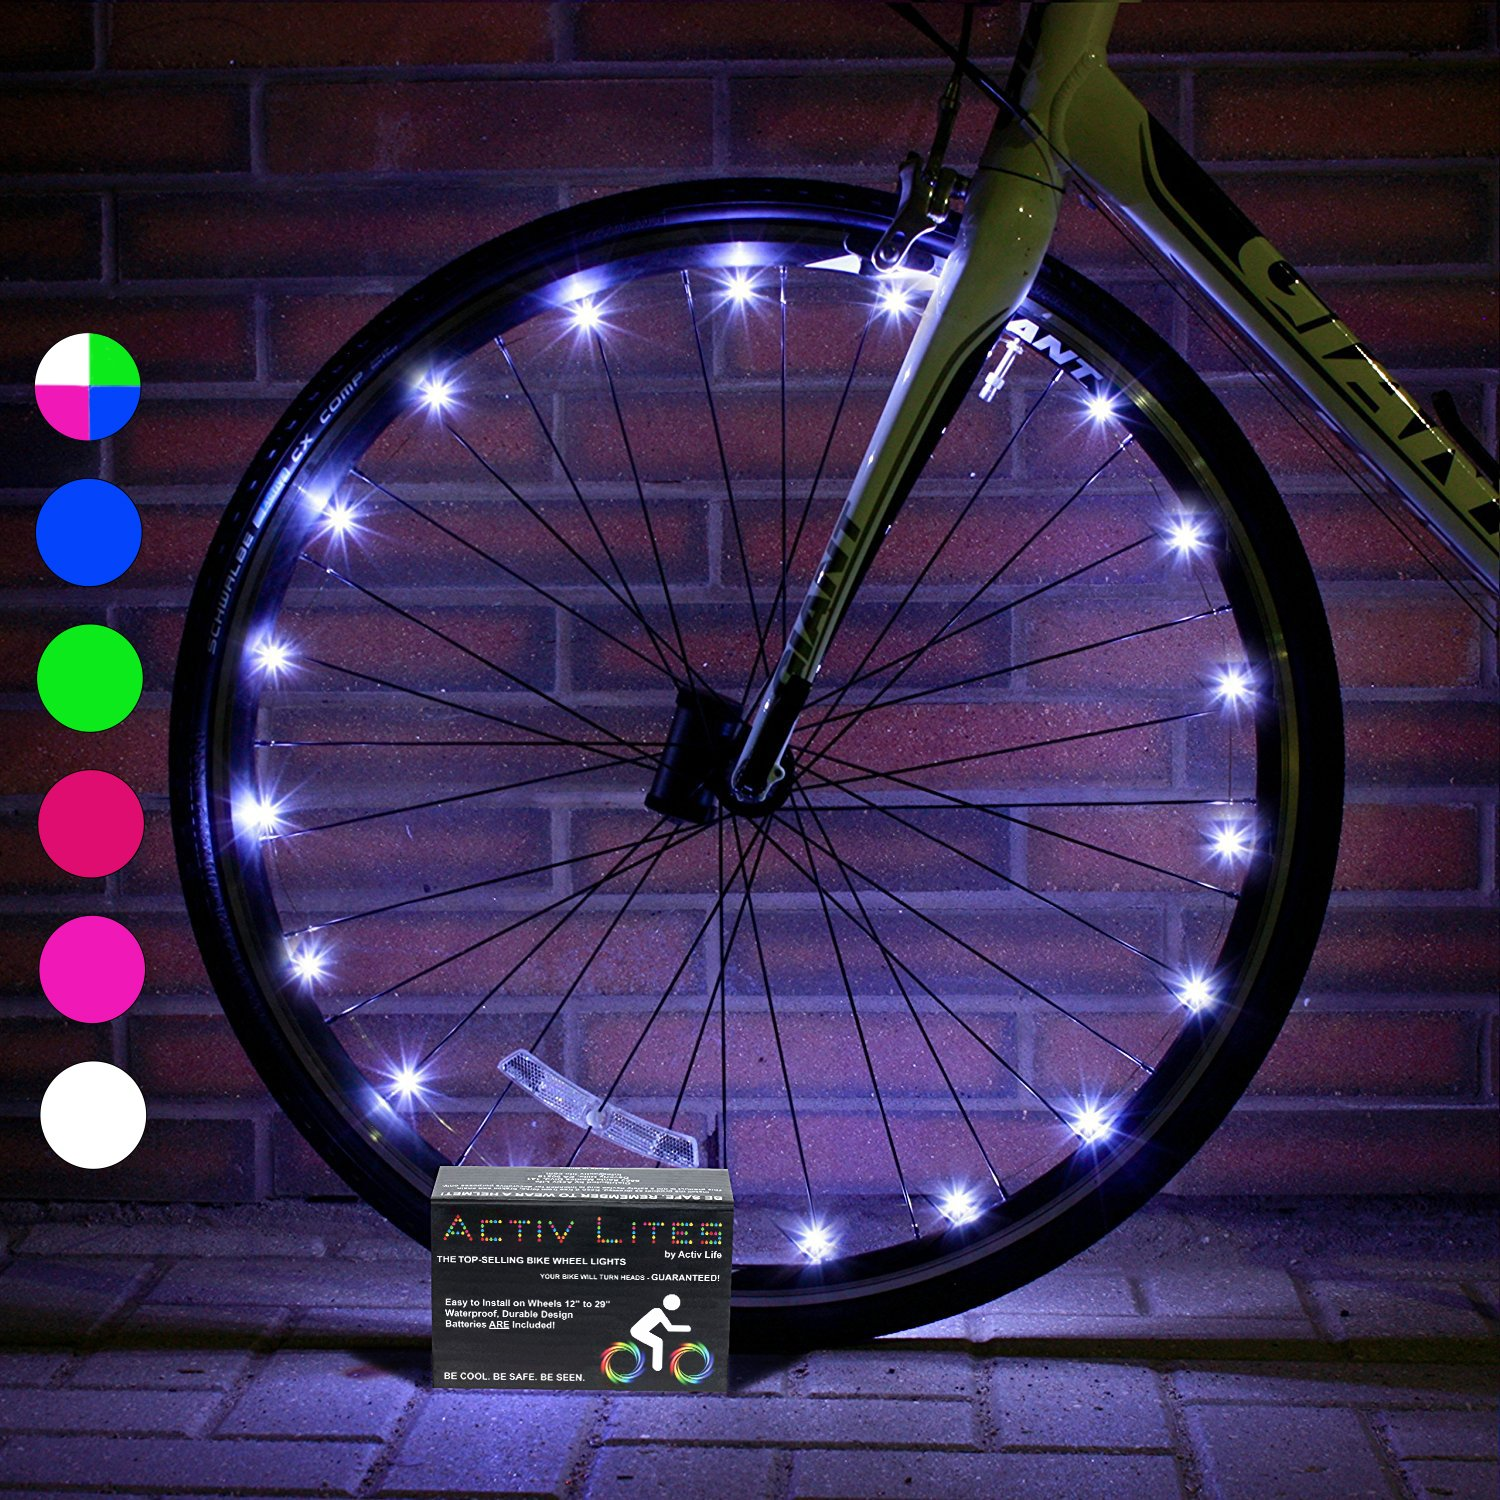 Activ Life Bike Lights (1 Tire, White) Hot Wheels for Boys, Girls & Fun Gift Ideas for Him and Her - Popular Bicycle Decorations for Bright Safety & Cool Style - LED Bulbs - Day & Night Street Track